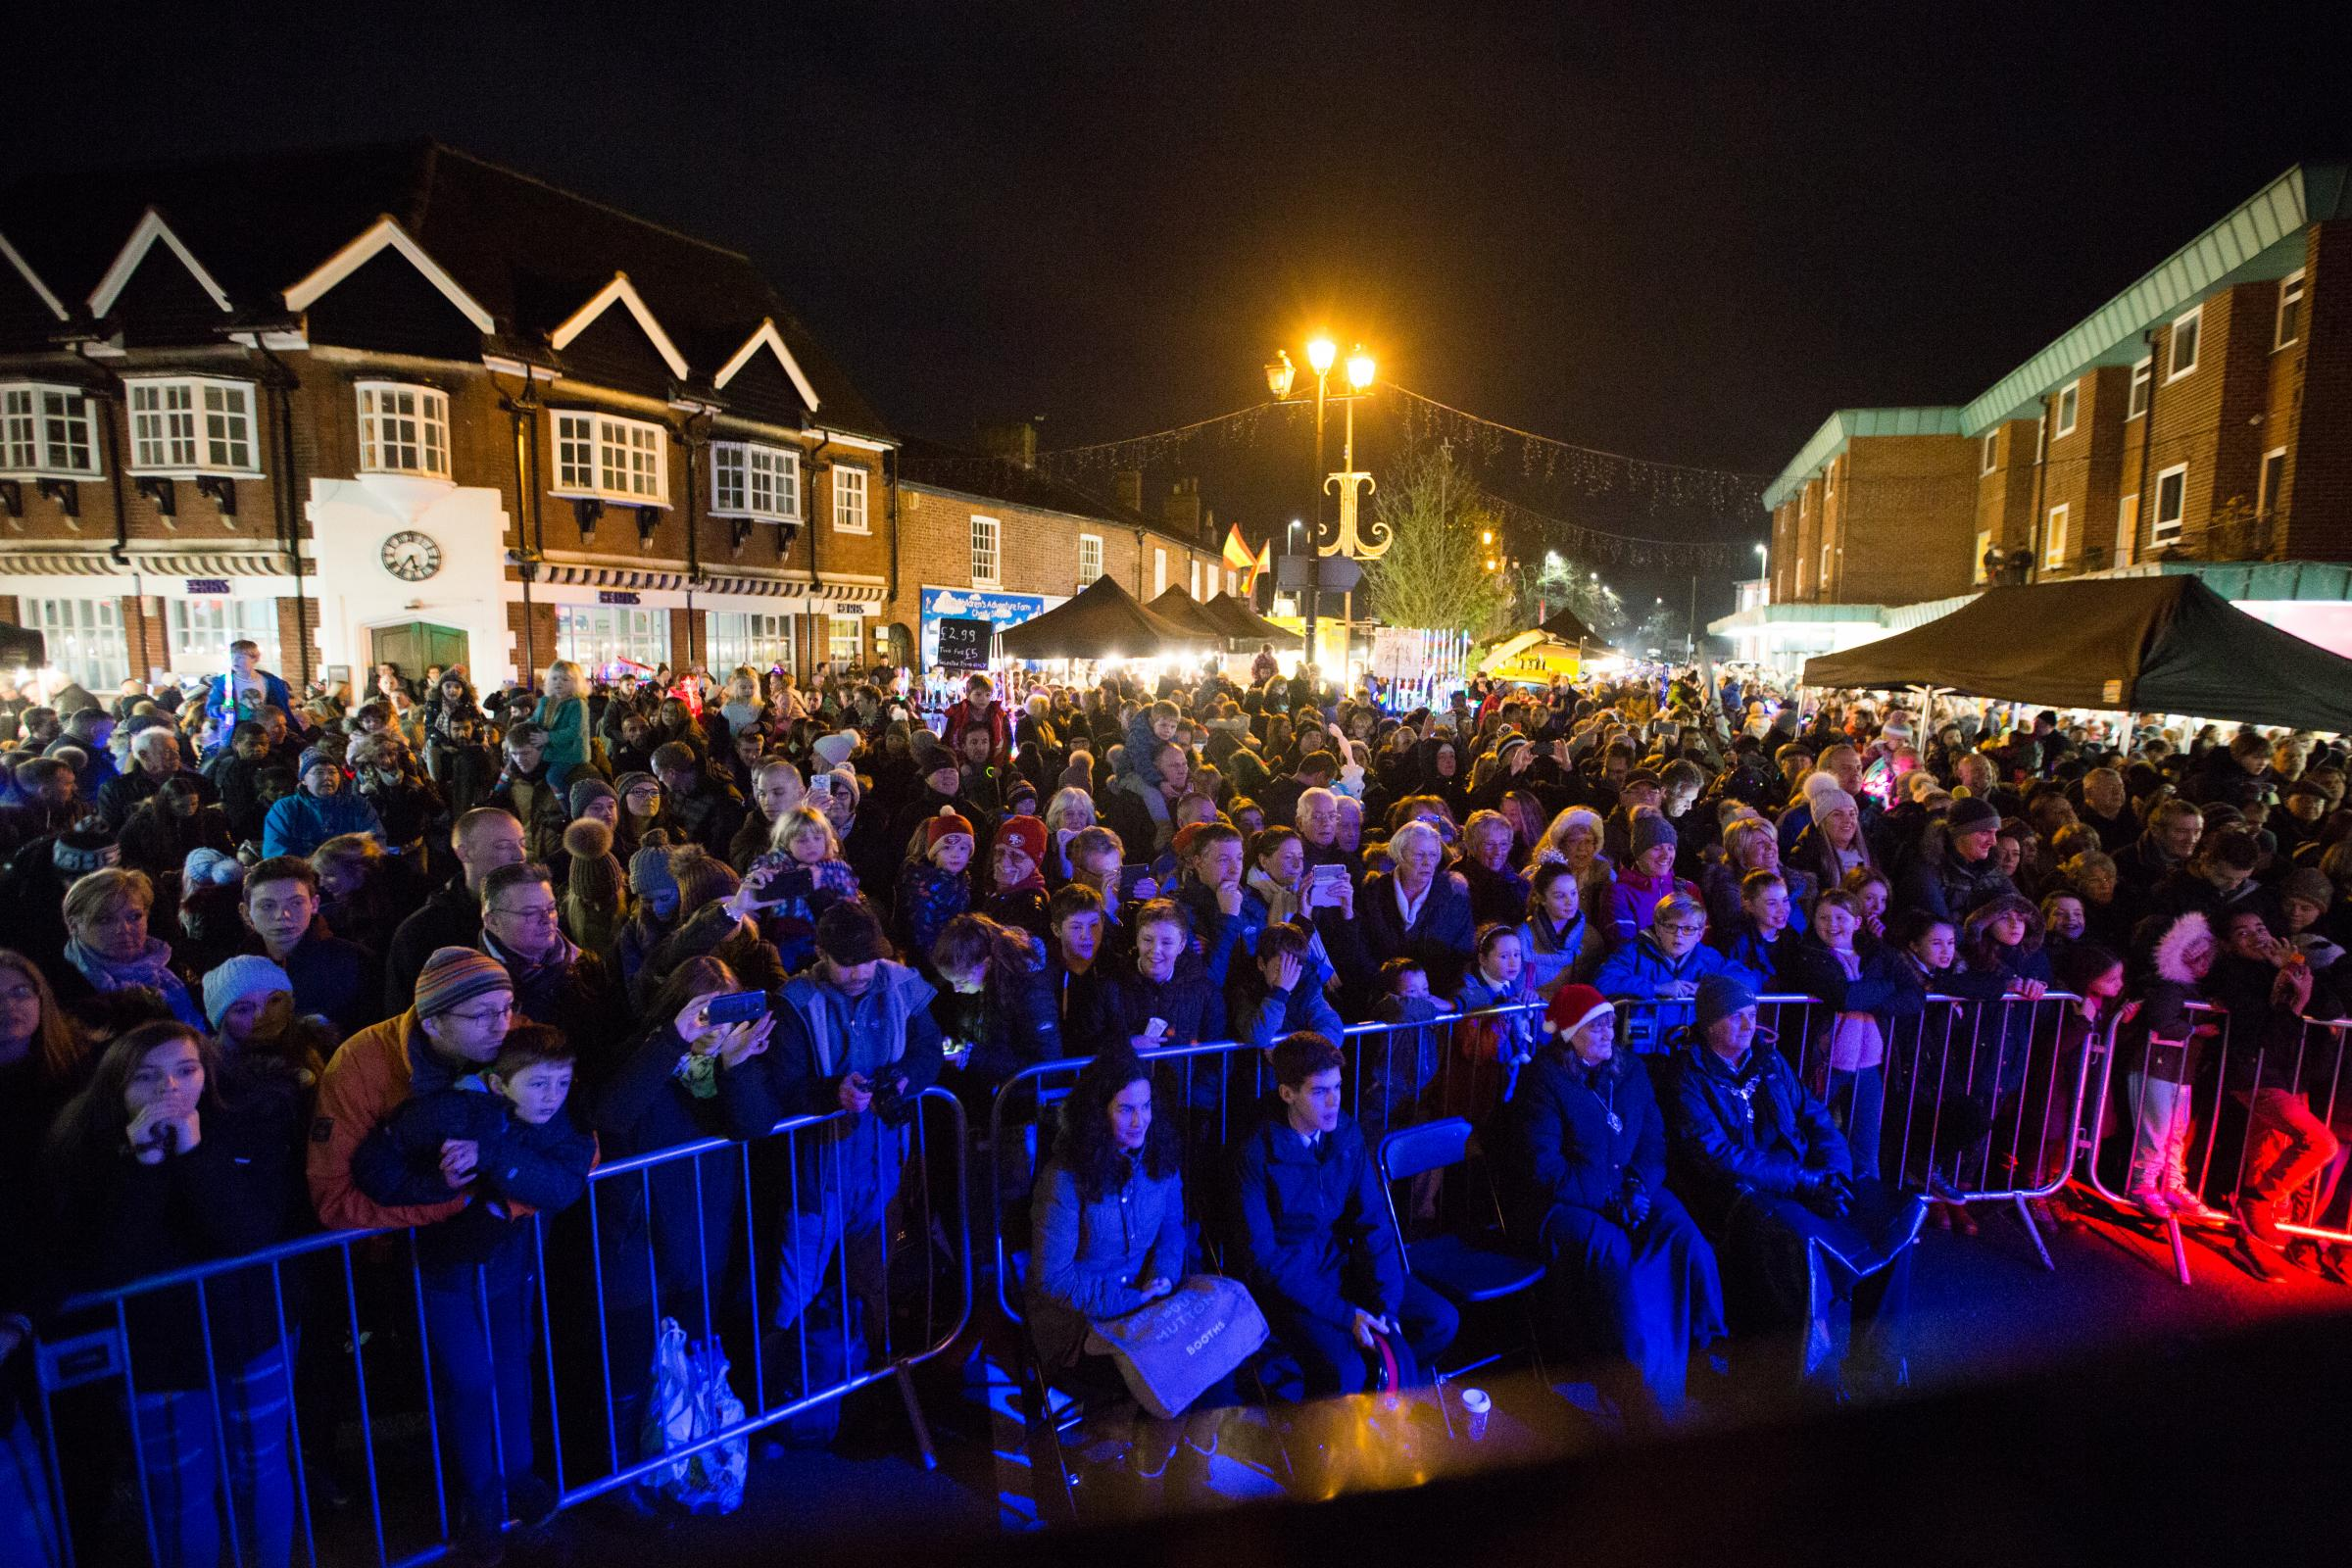 'Tis the season to be jolly as Christmas comes to Knutsford with bumper market and lights switch-on